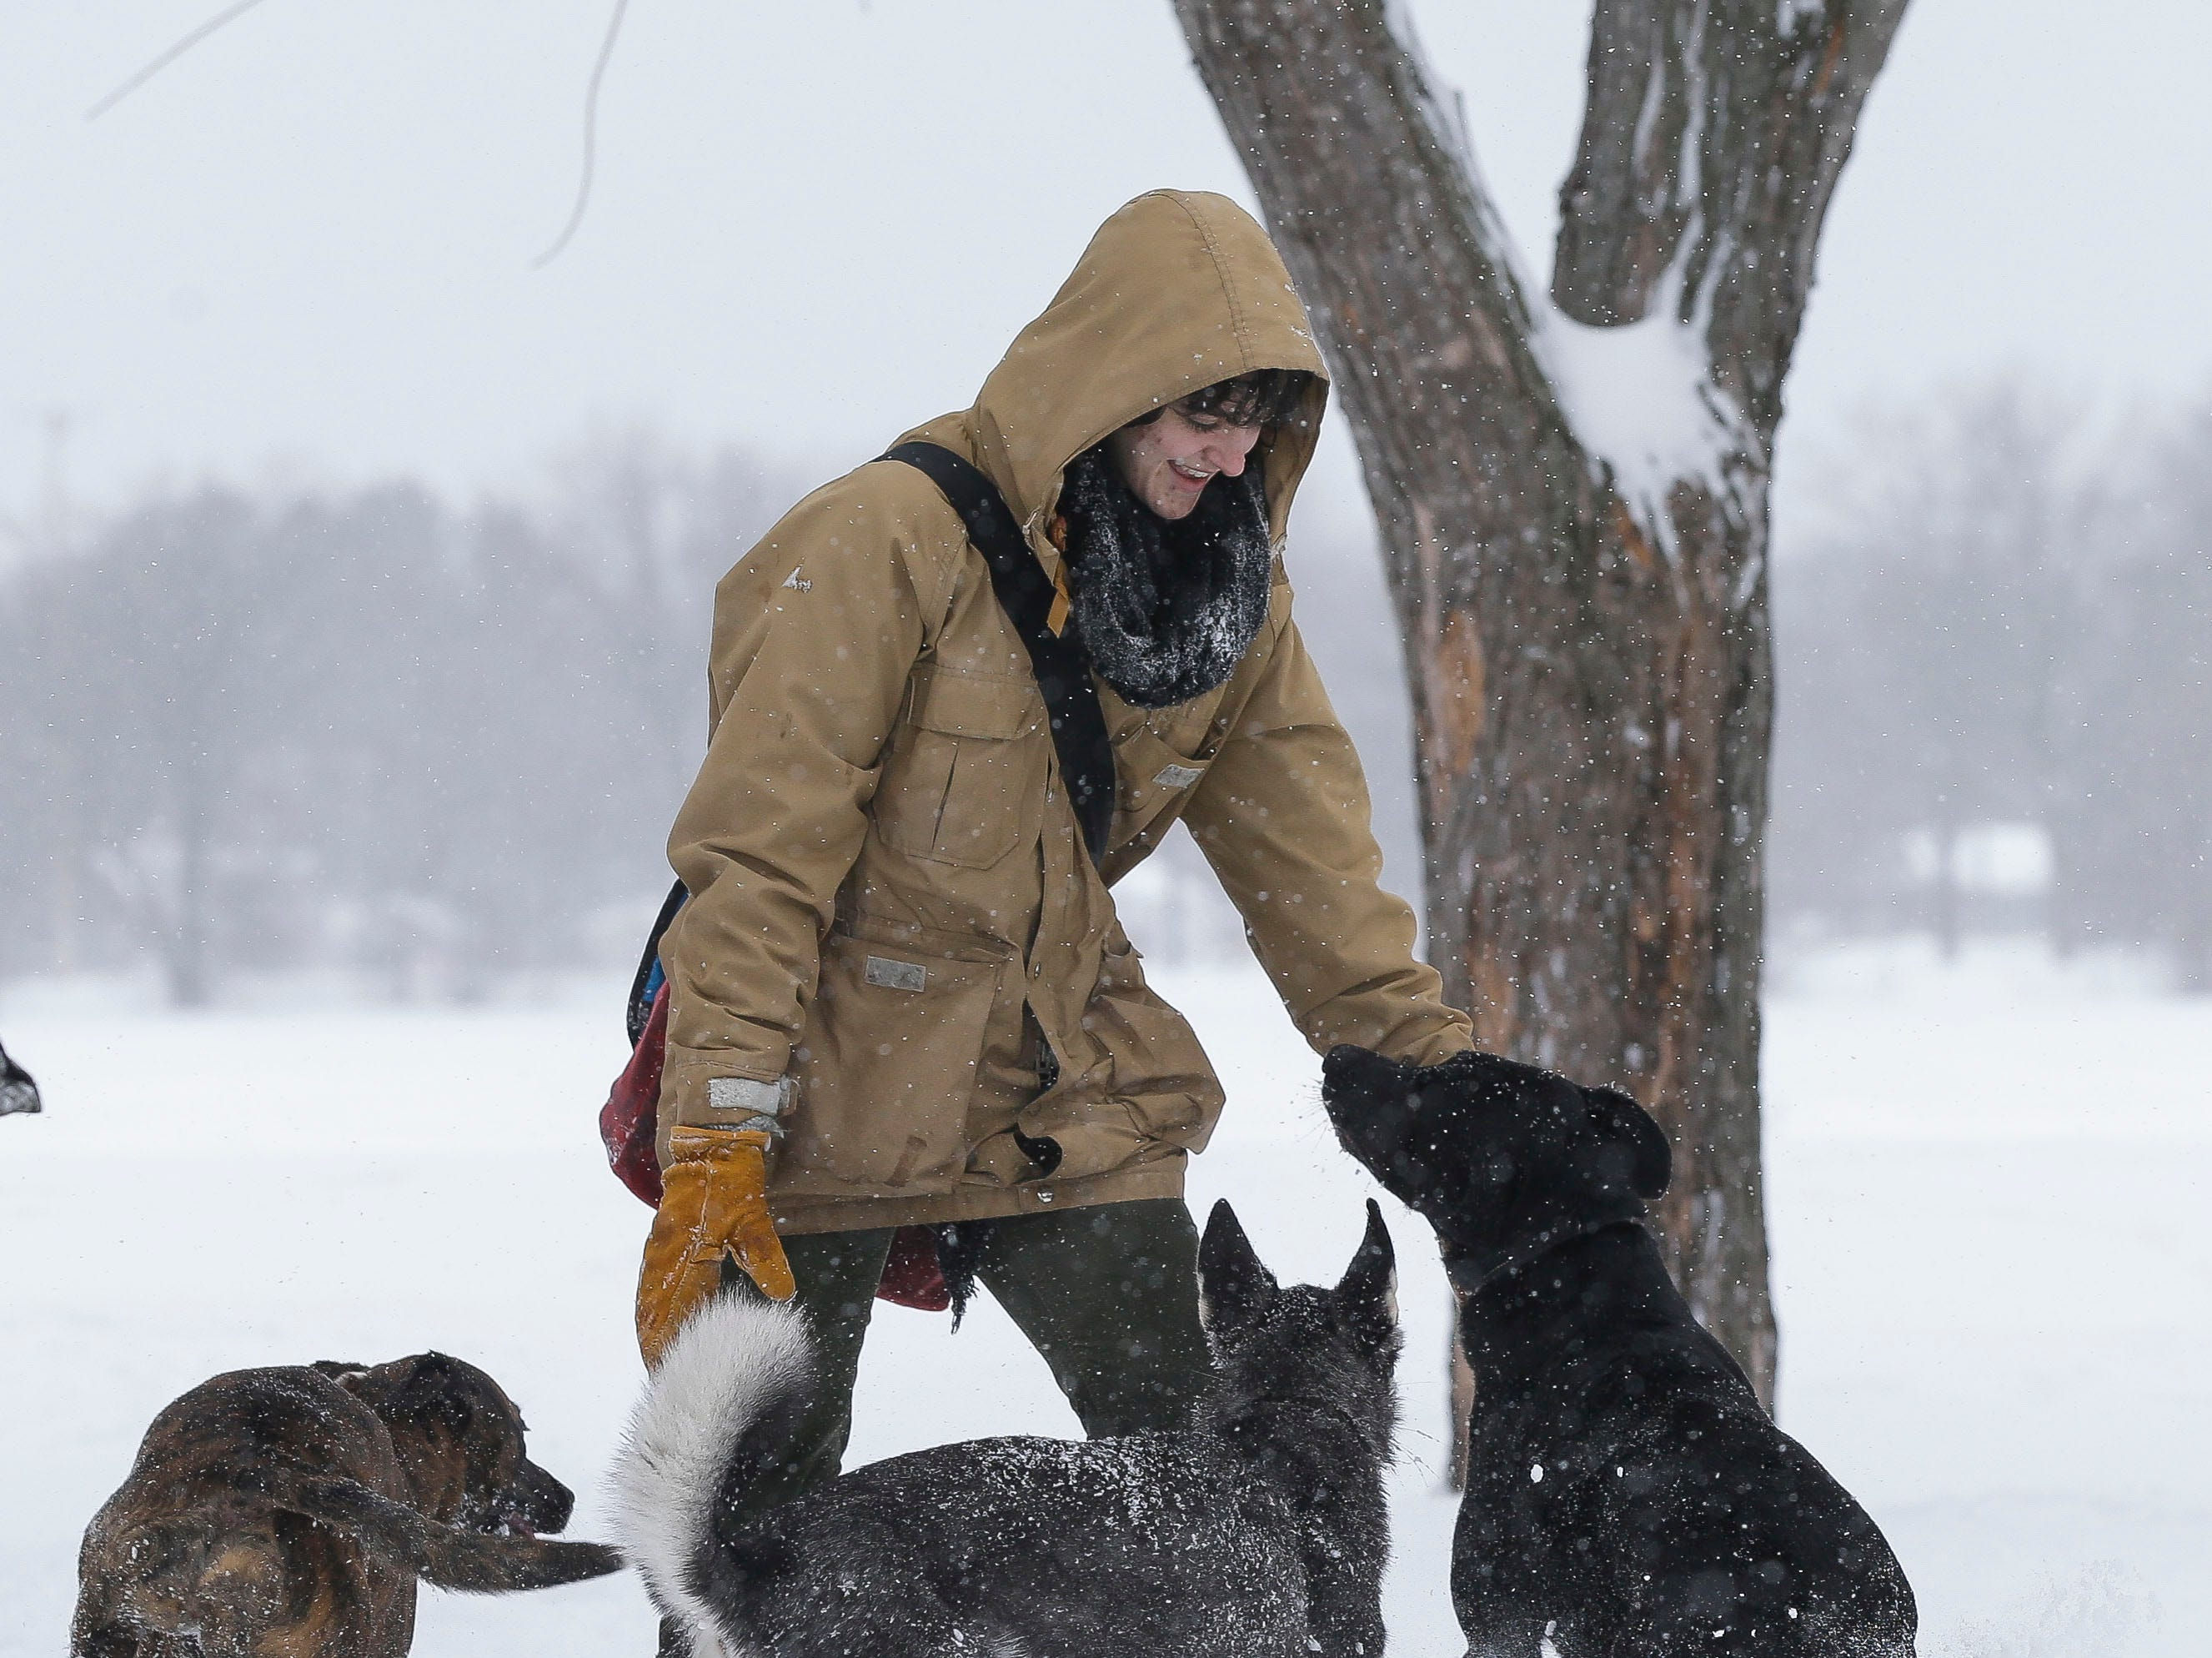 Stephanie Bau plays with her dogs on Tuesday, February 12, 2019, at Pioneer Park in Stevens Point, Wis. A winter storm is expected to drop 8-11 inches of snow in central Wisconsin before clearing Tuesday night.